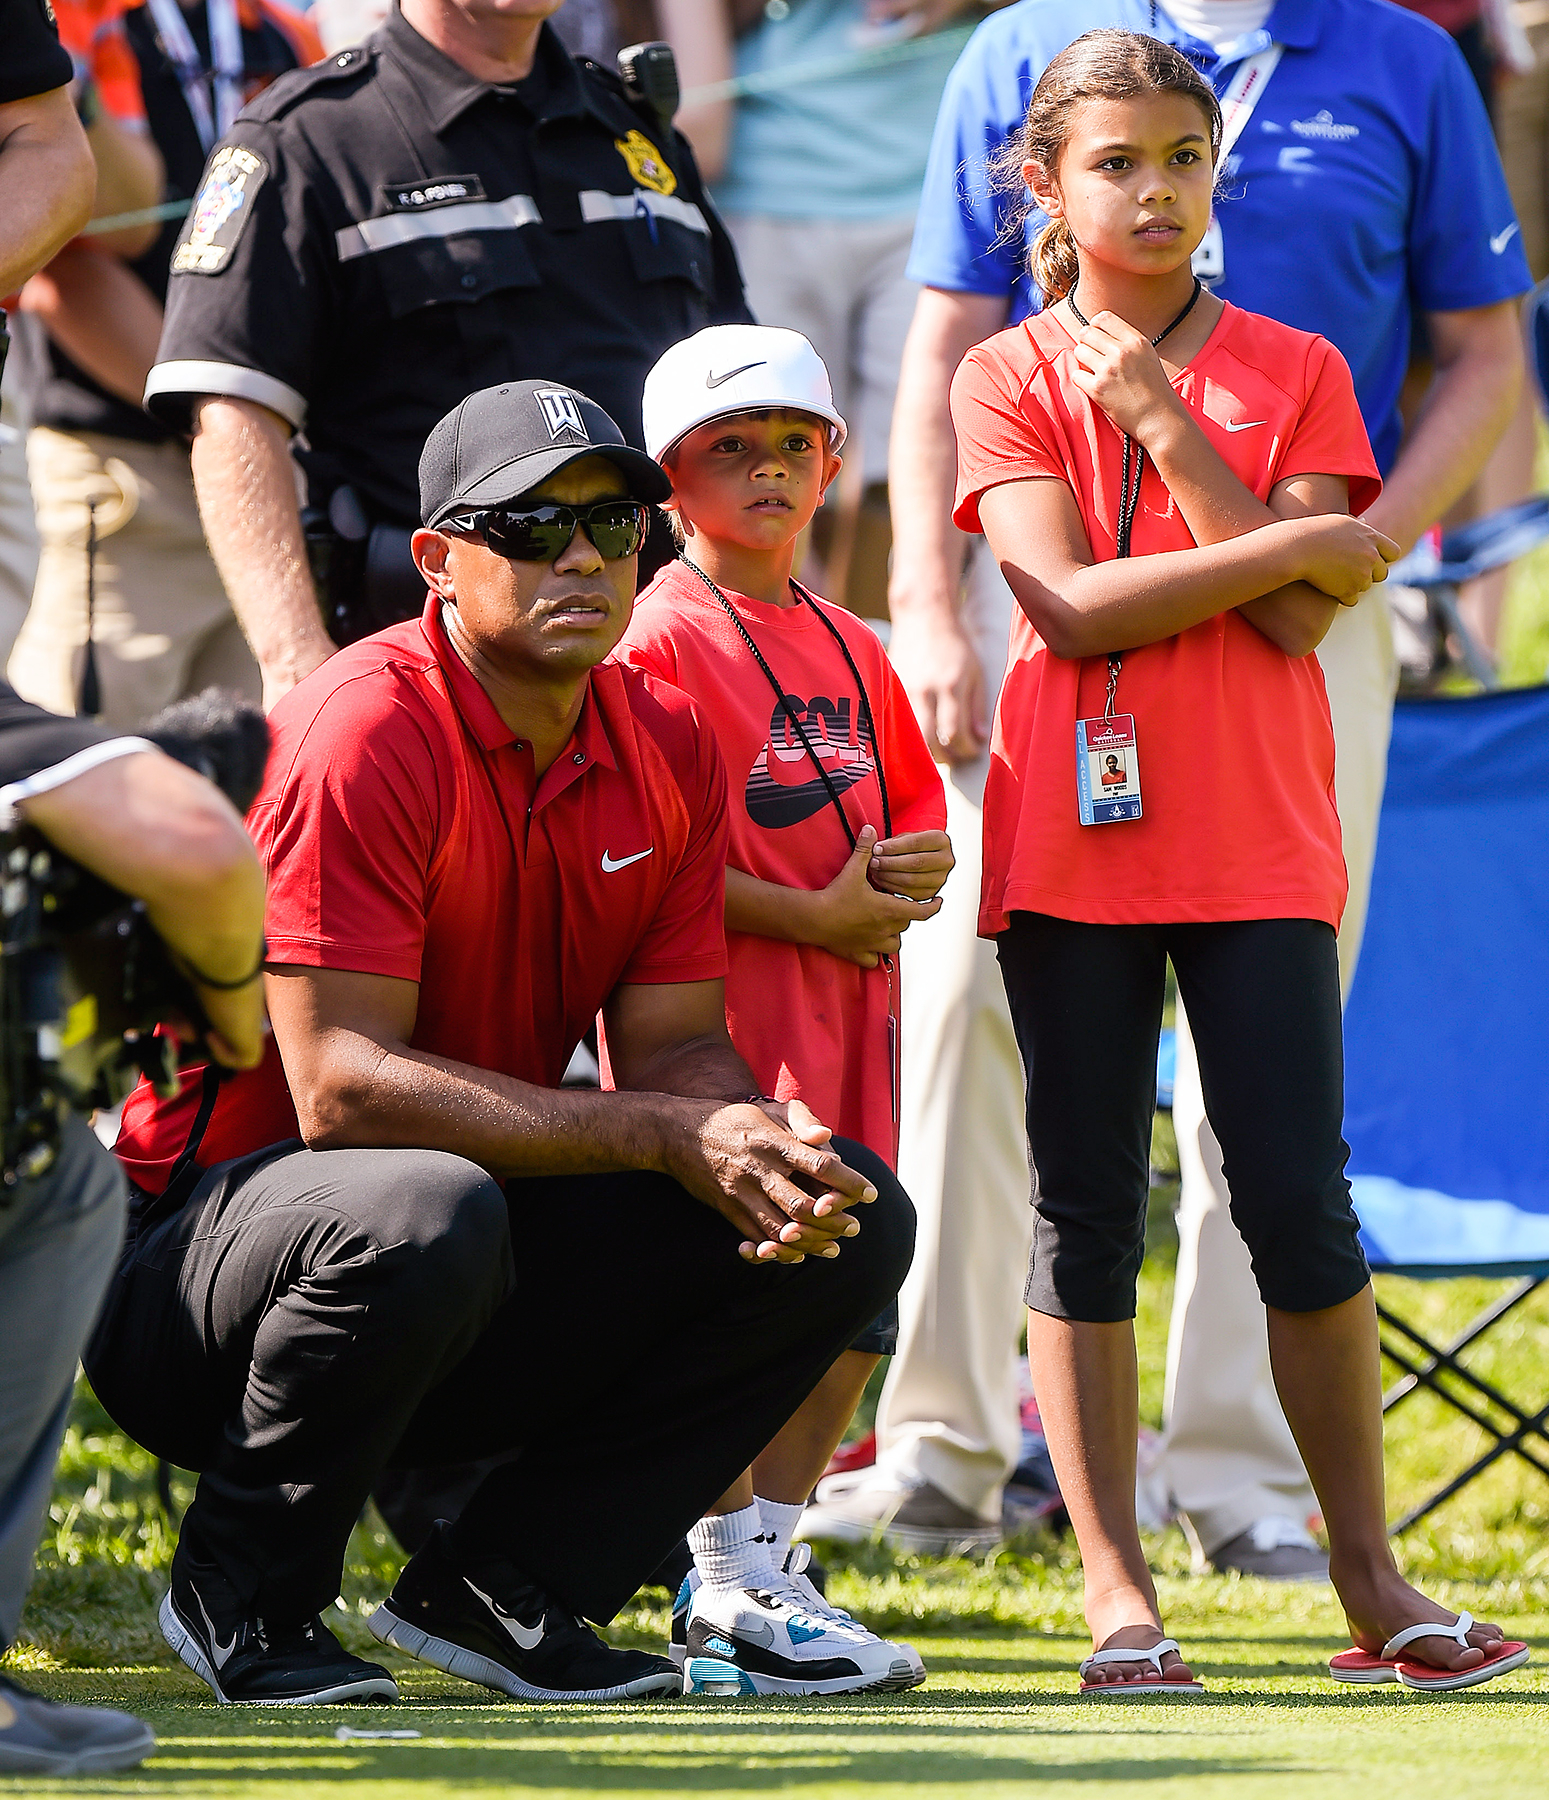 show pictures of tiger woods children today